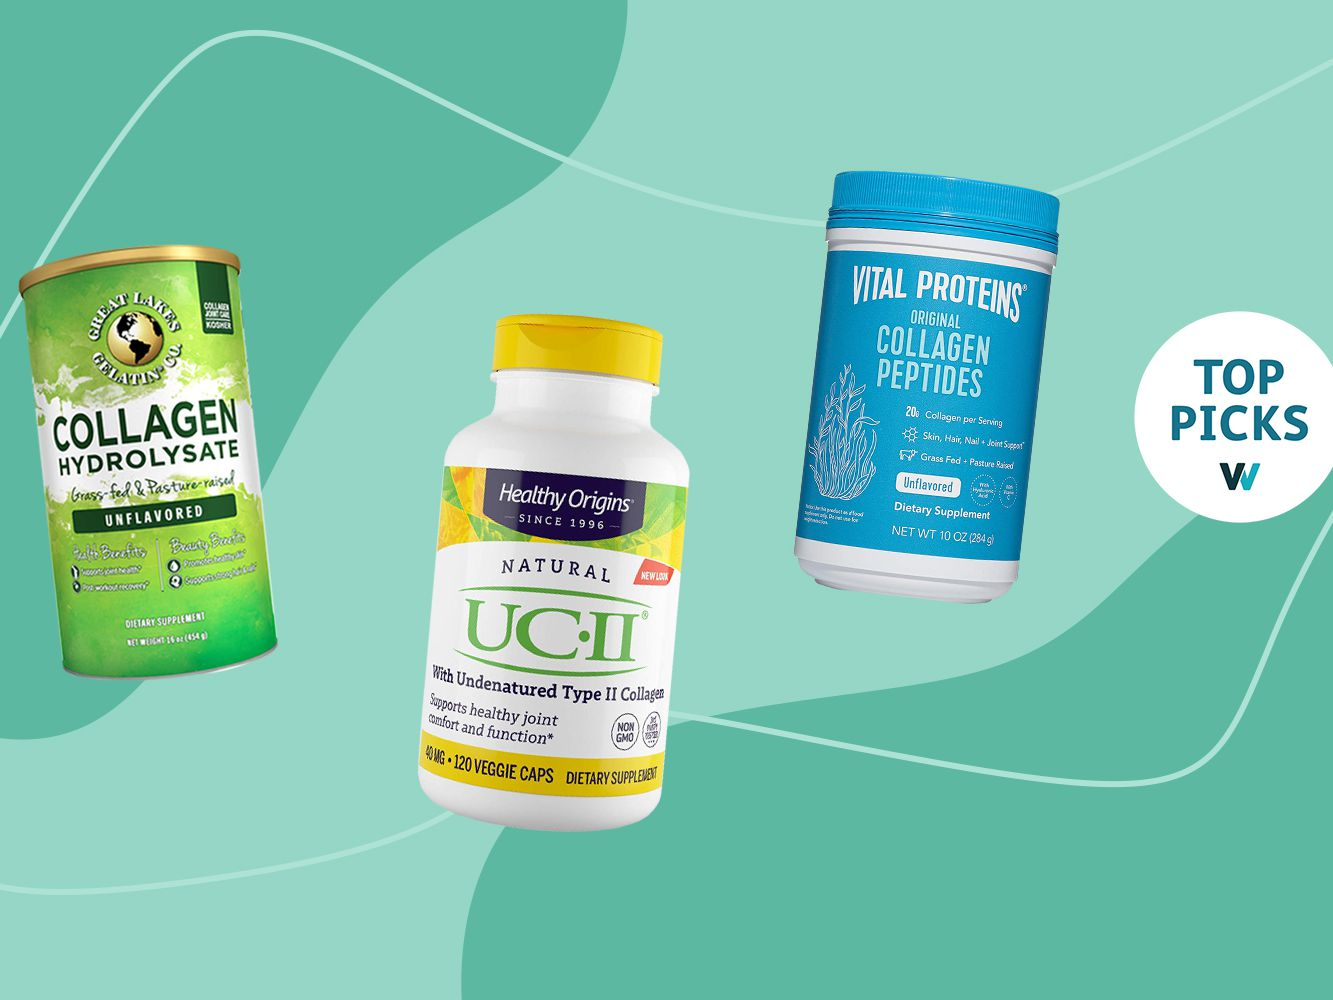 The 7 Best Collagen Supplements According To A Dietitian